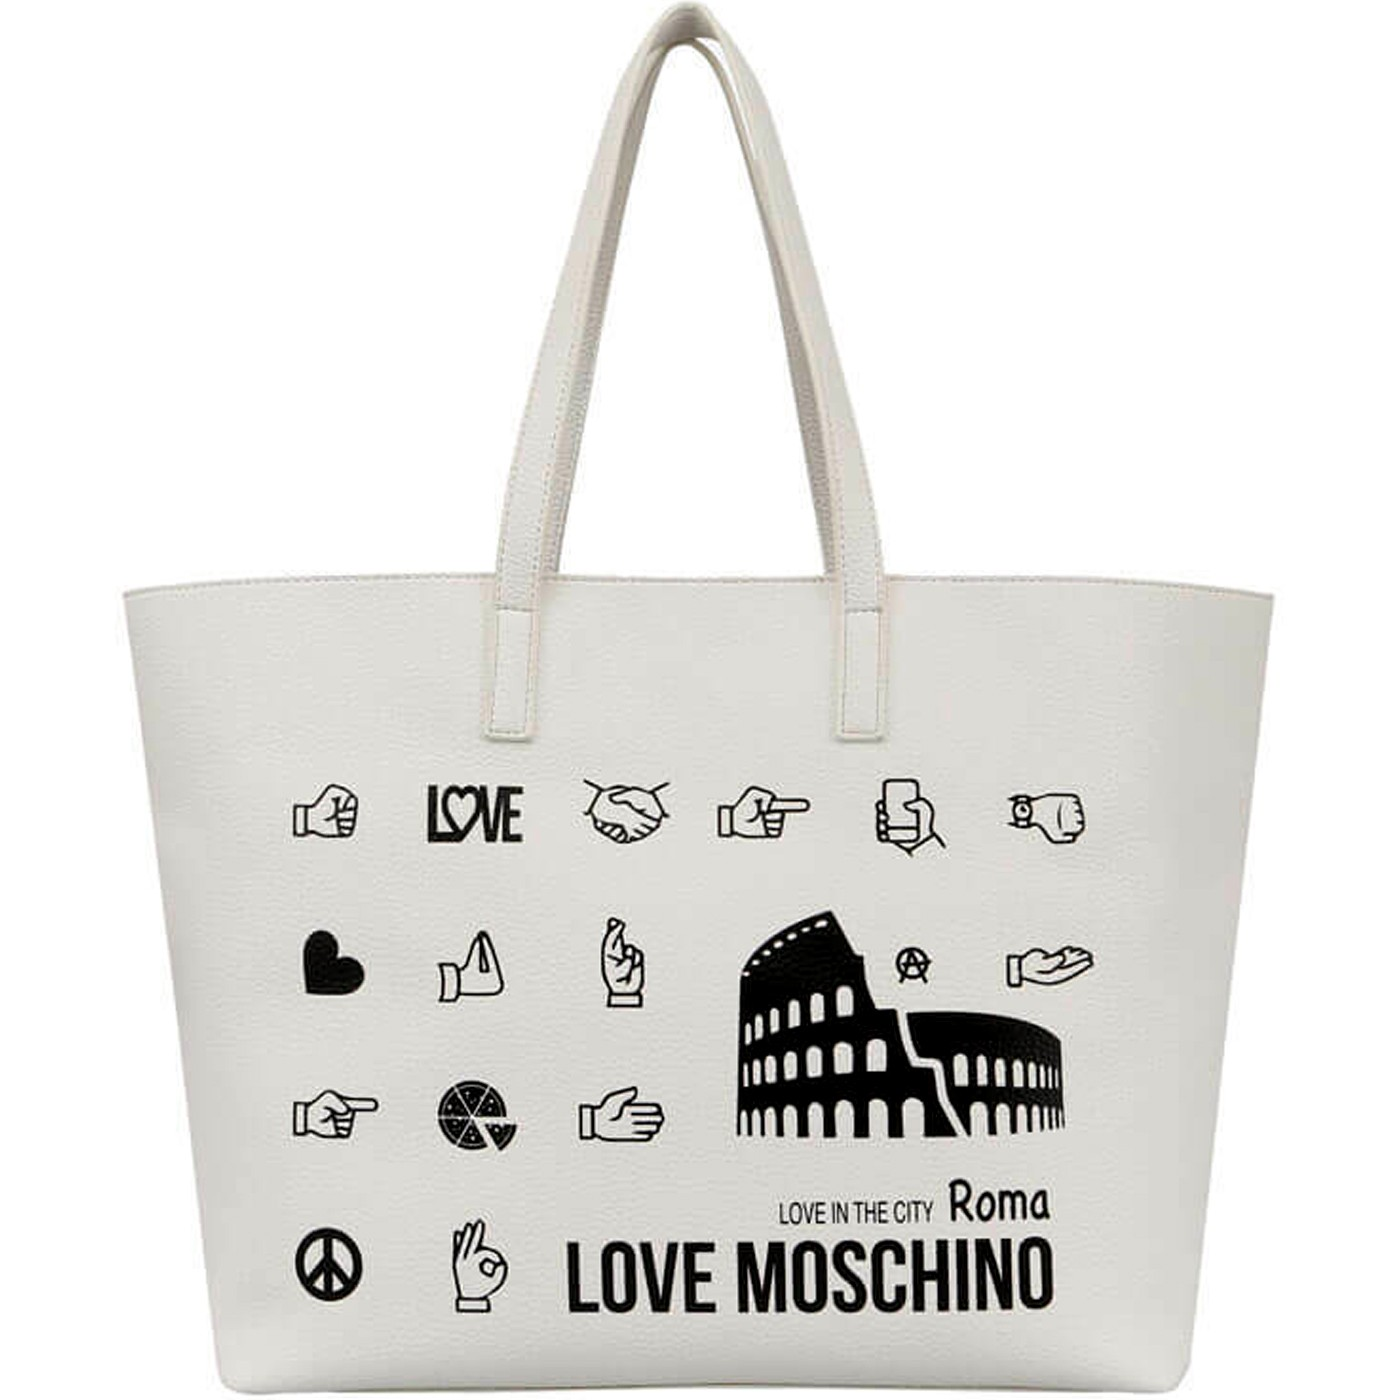 12a88273a8 Details about LOVE MOSCHINO Faux Leather large shoulder bag with lettering  WHITE S/S 2019